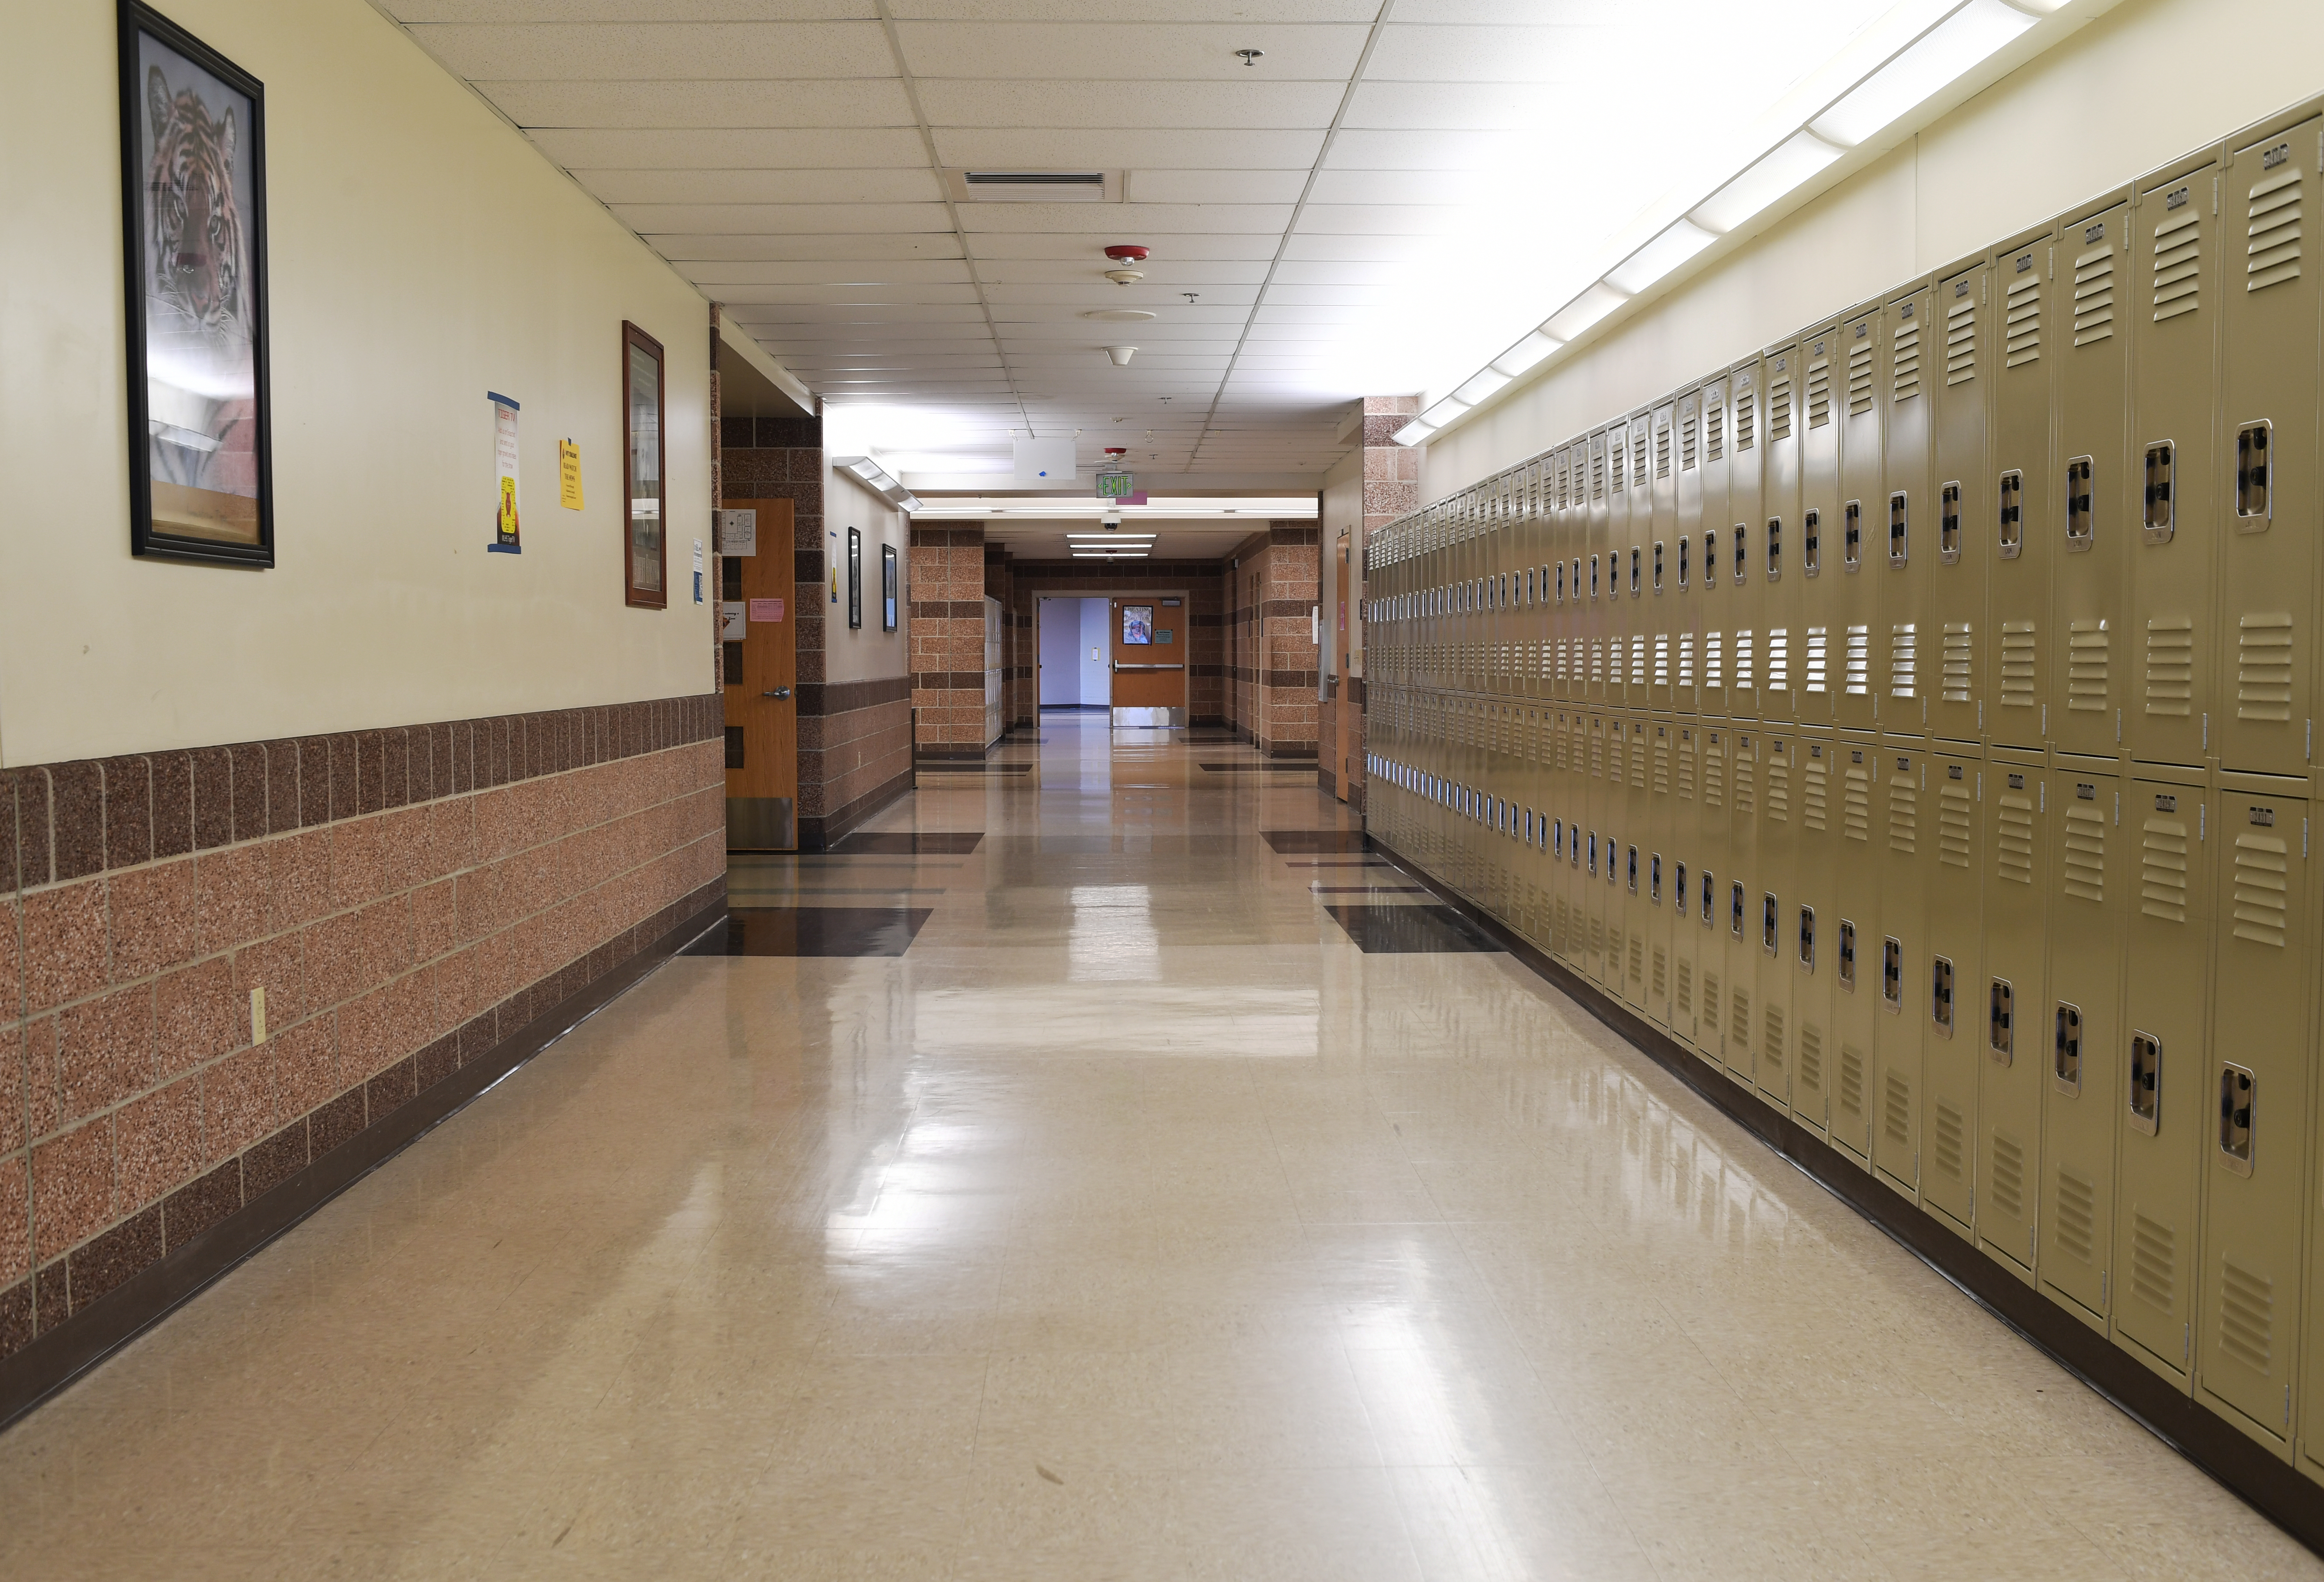 An empty hallway with a row of lockers in a Colorado high school